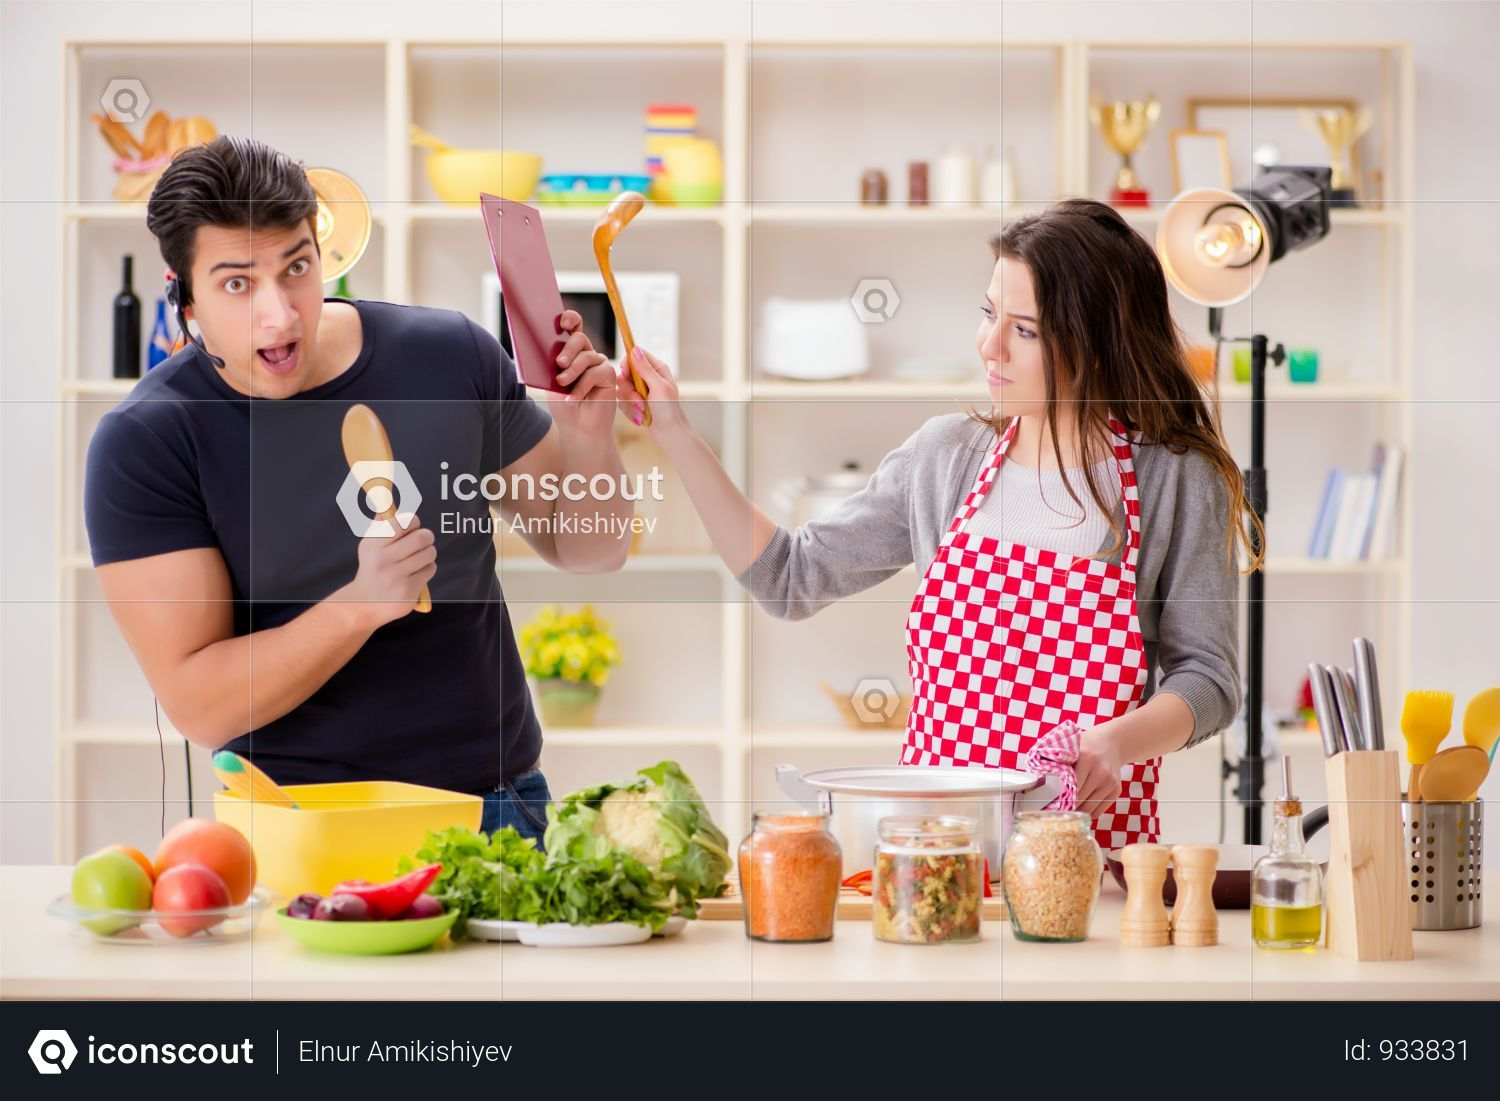 Premium Food Cooking Tv Show In The Studio Photo Download In Png Jpg Format Cooking Tv Cooking Recipes Premium Food